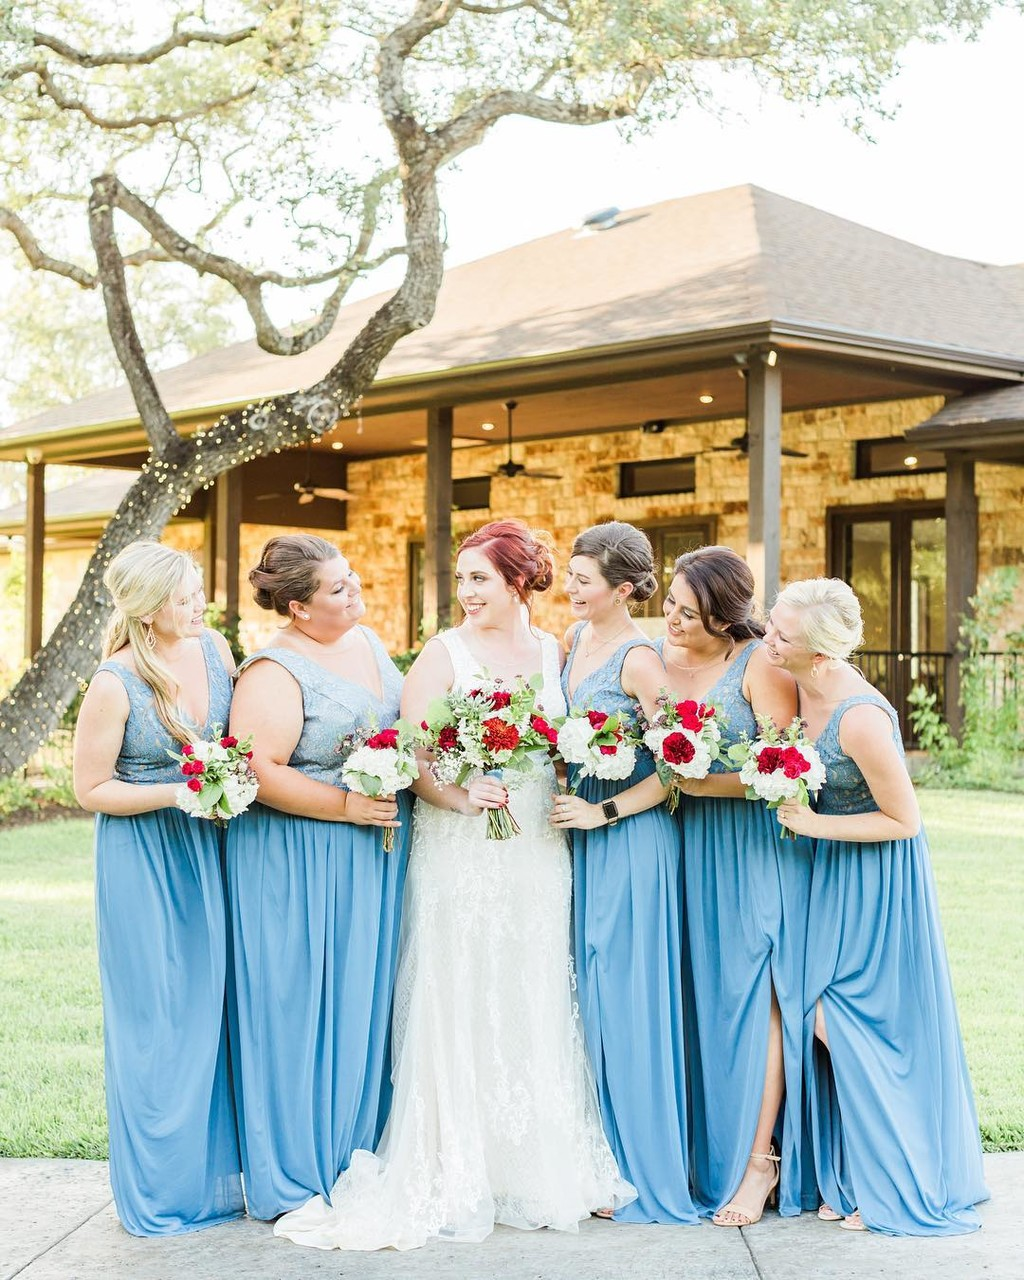 Amelia and her #bridetribe were absolutely stunning